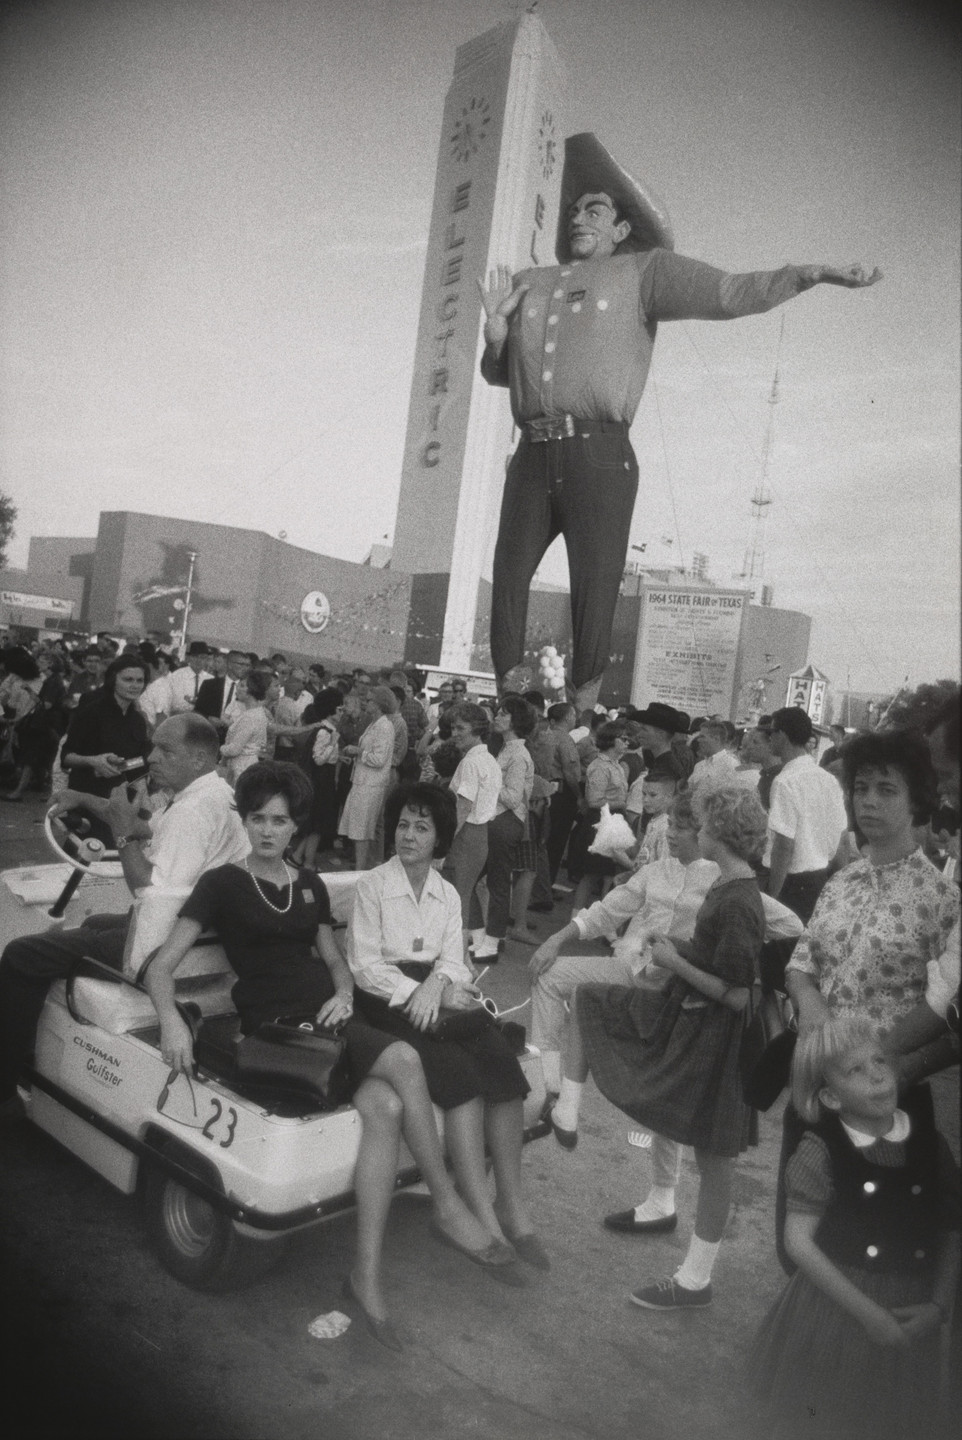 Garry Winogrand. Texas State Fair from Women are Beautiful. 1964